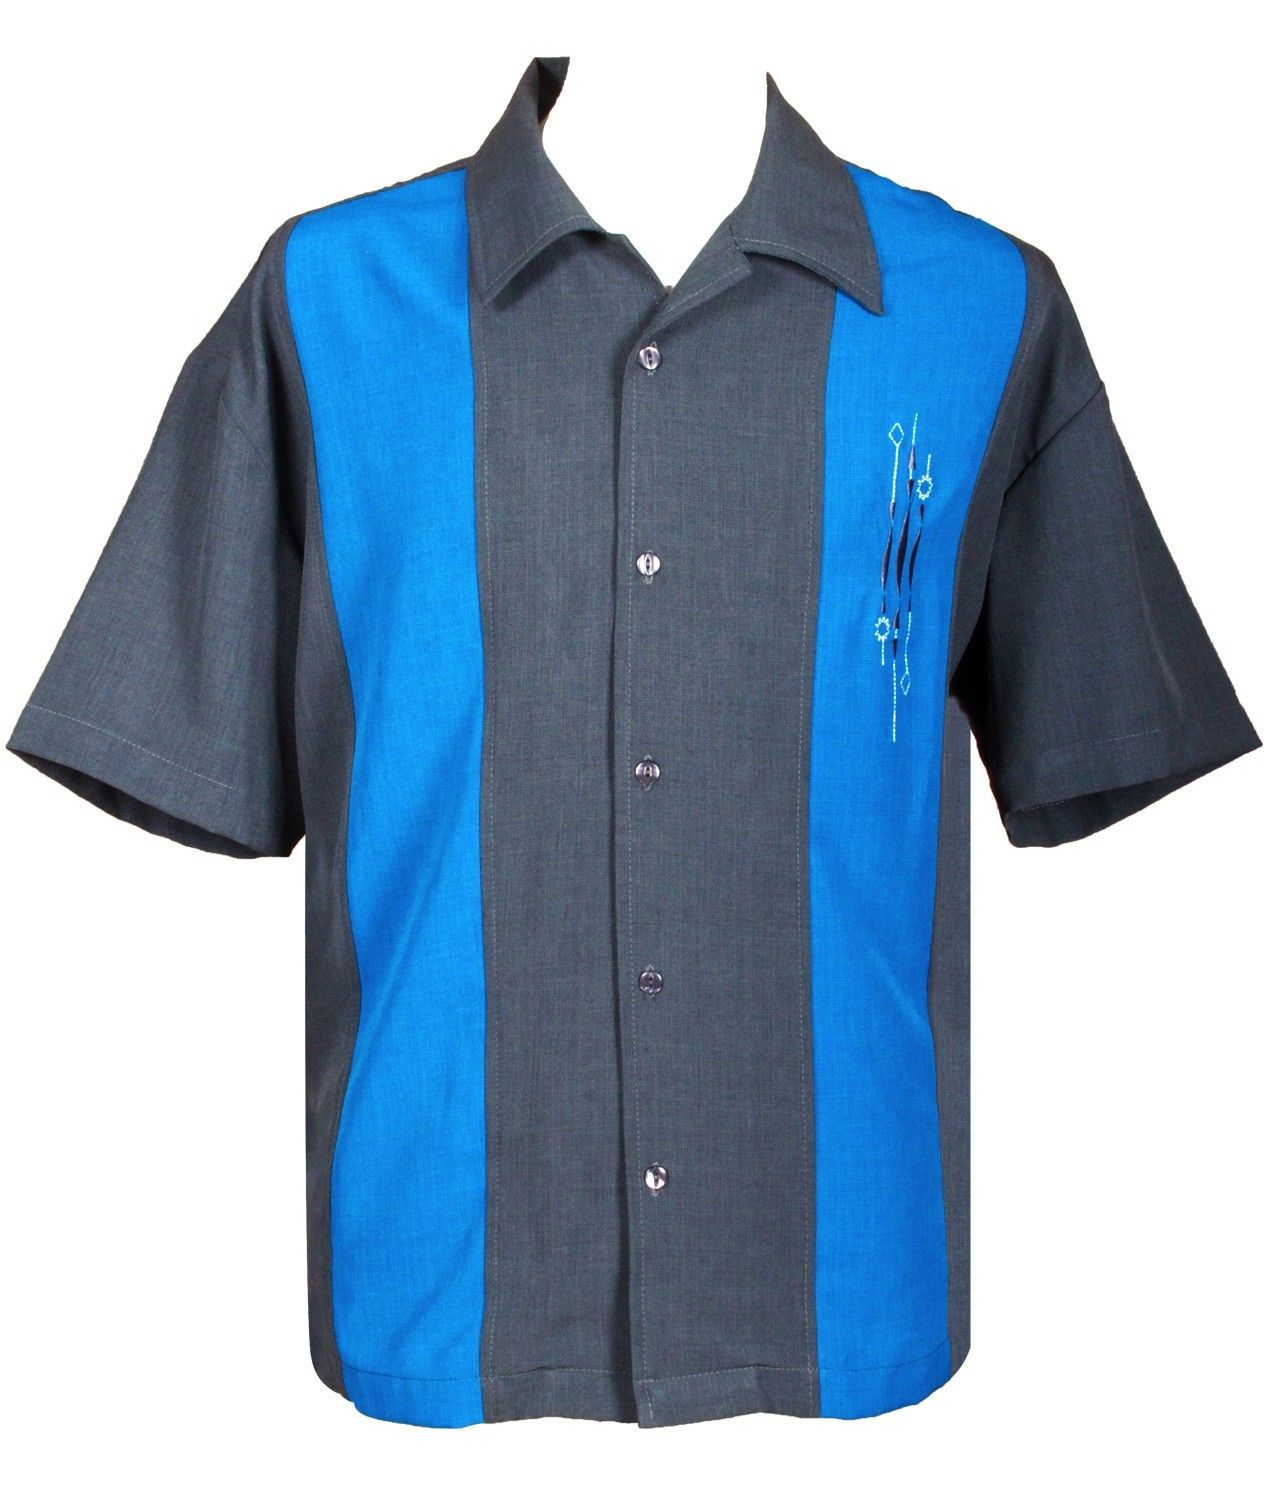 Mens Charcoal Bluetwo Panel Retro Embroidered Button Up Bowling